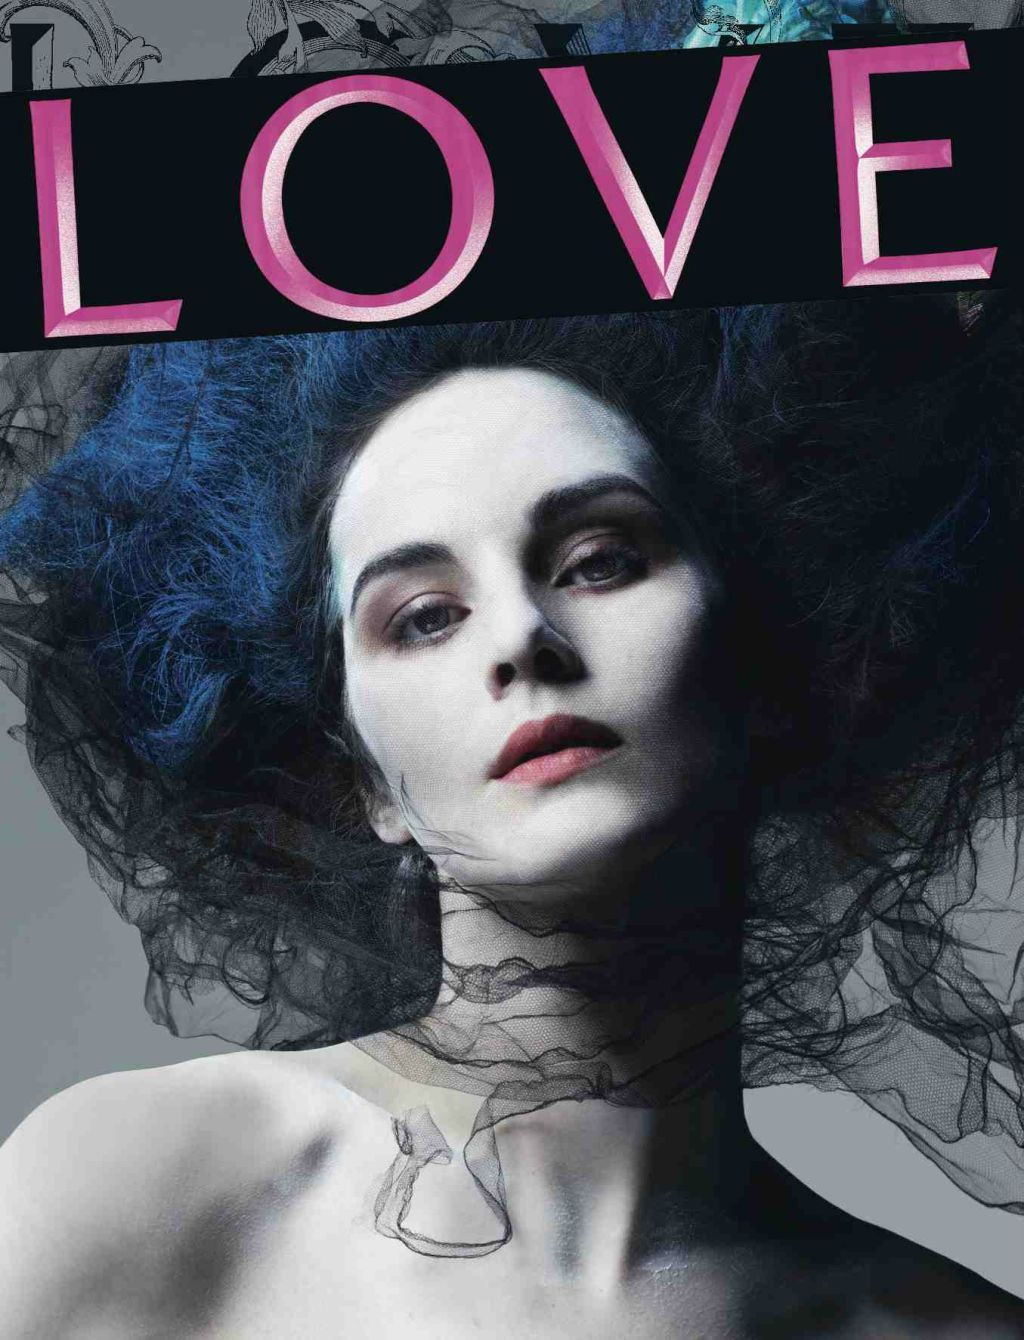 Michelle Dockery - Love #8 by Mert & Marcus, Fall/Winter 2012-13